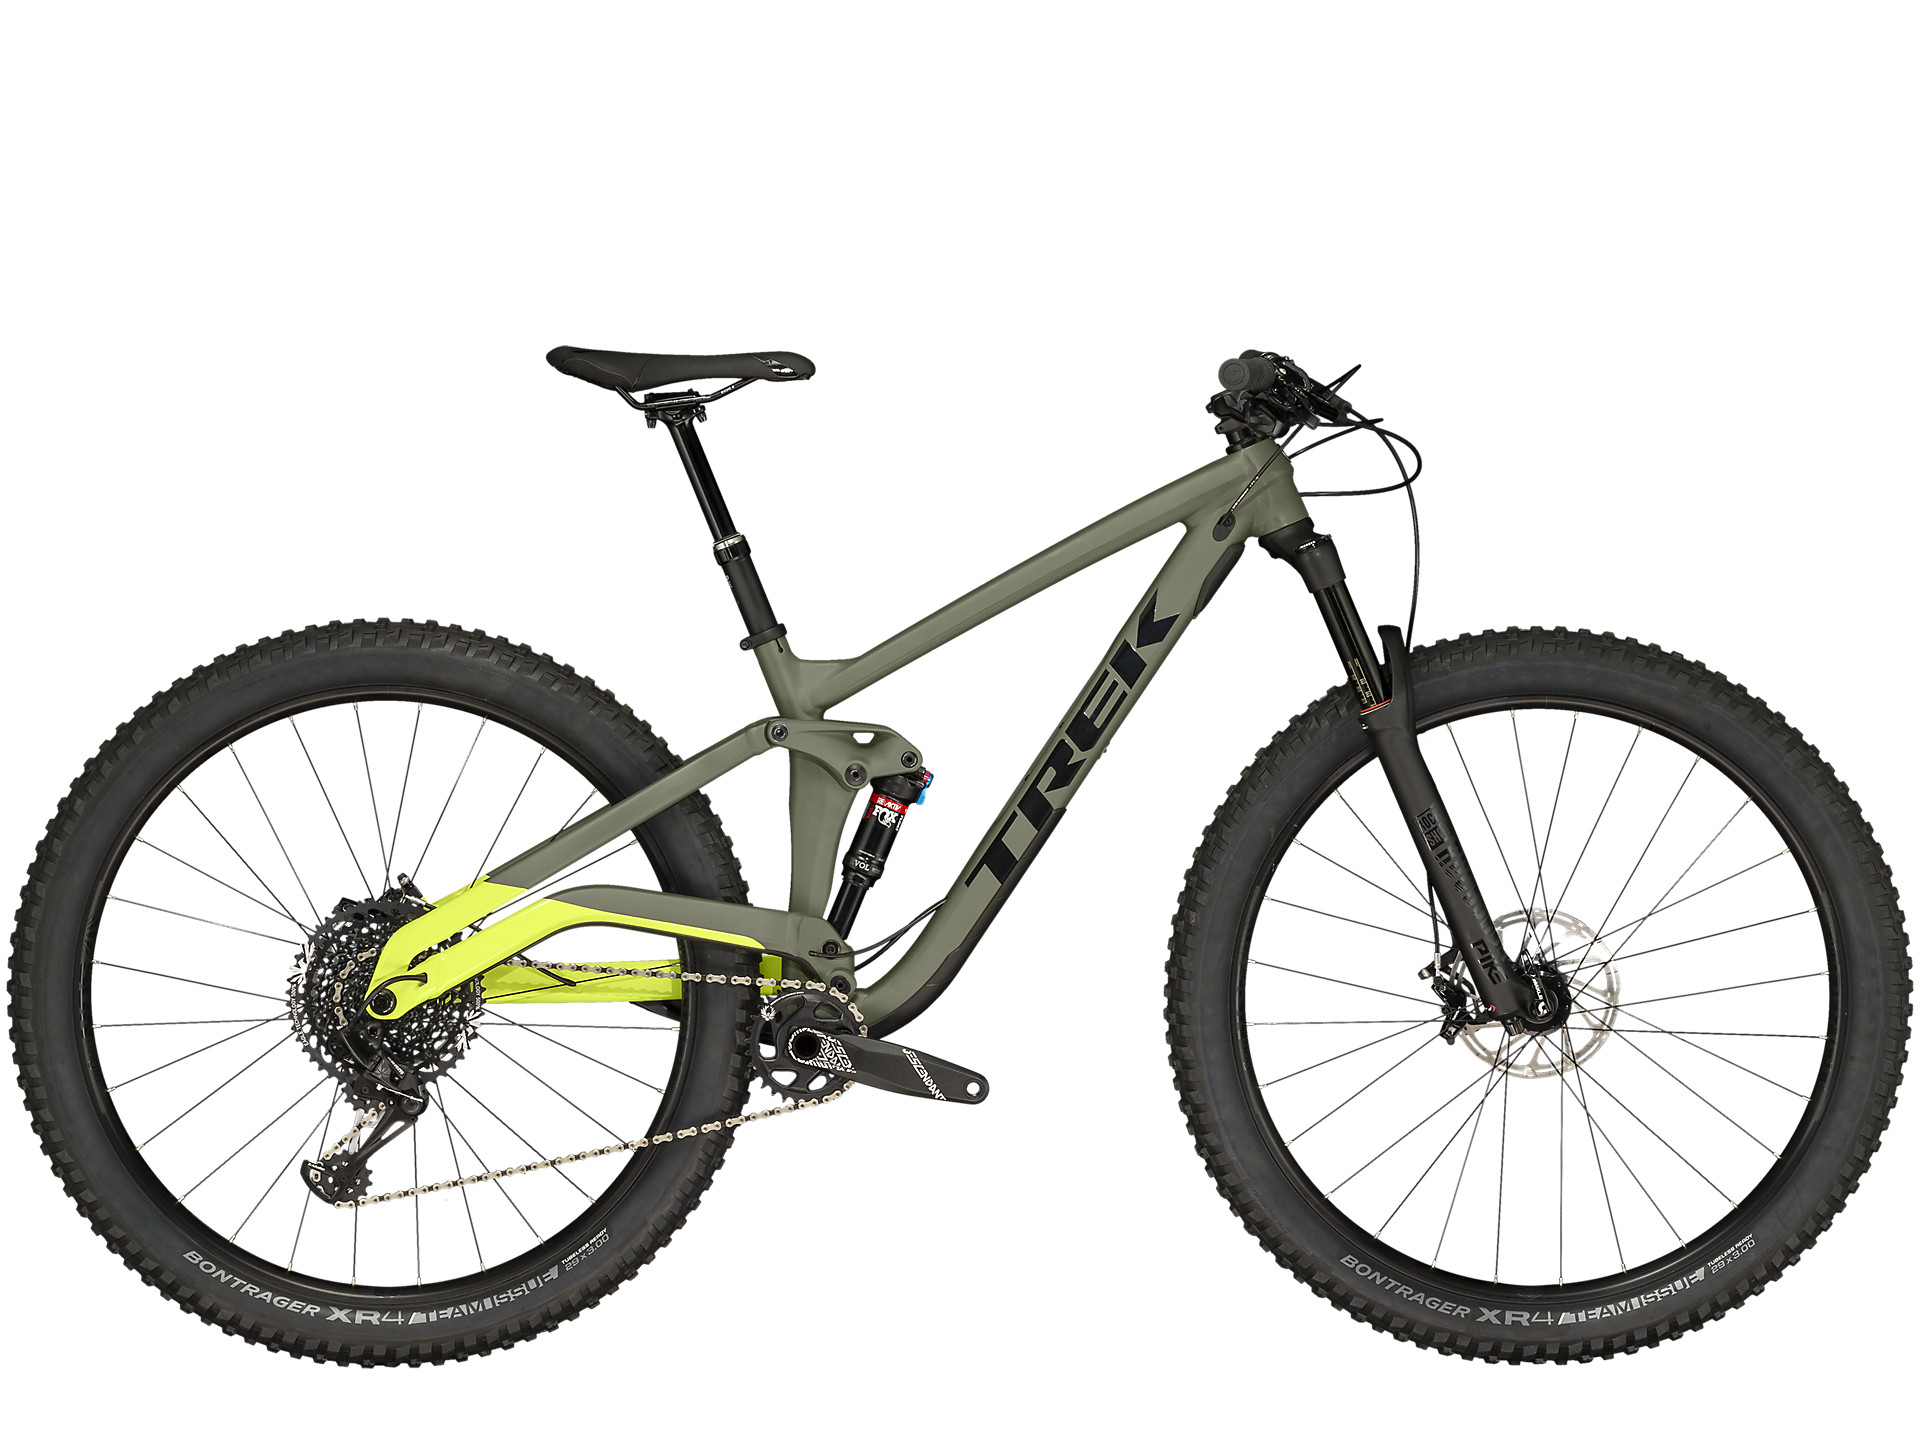 3519c38bd51 Mountain bikes | Trek Bikes